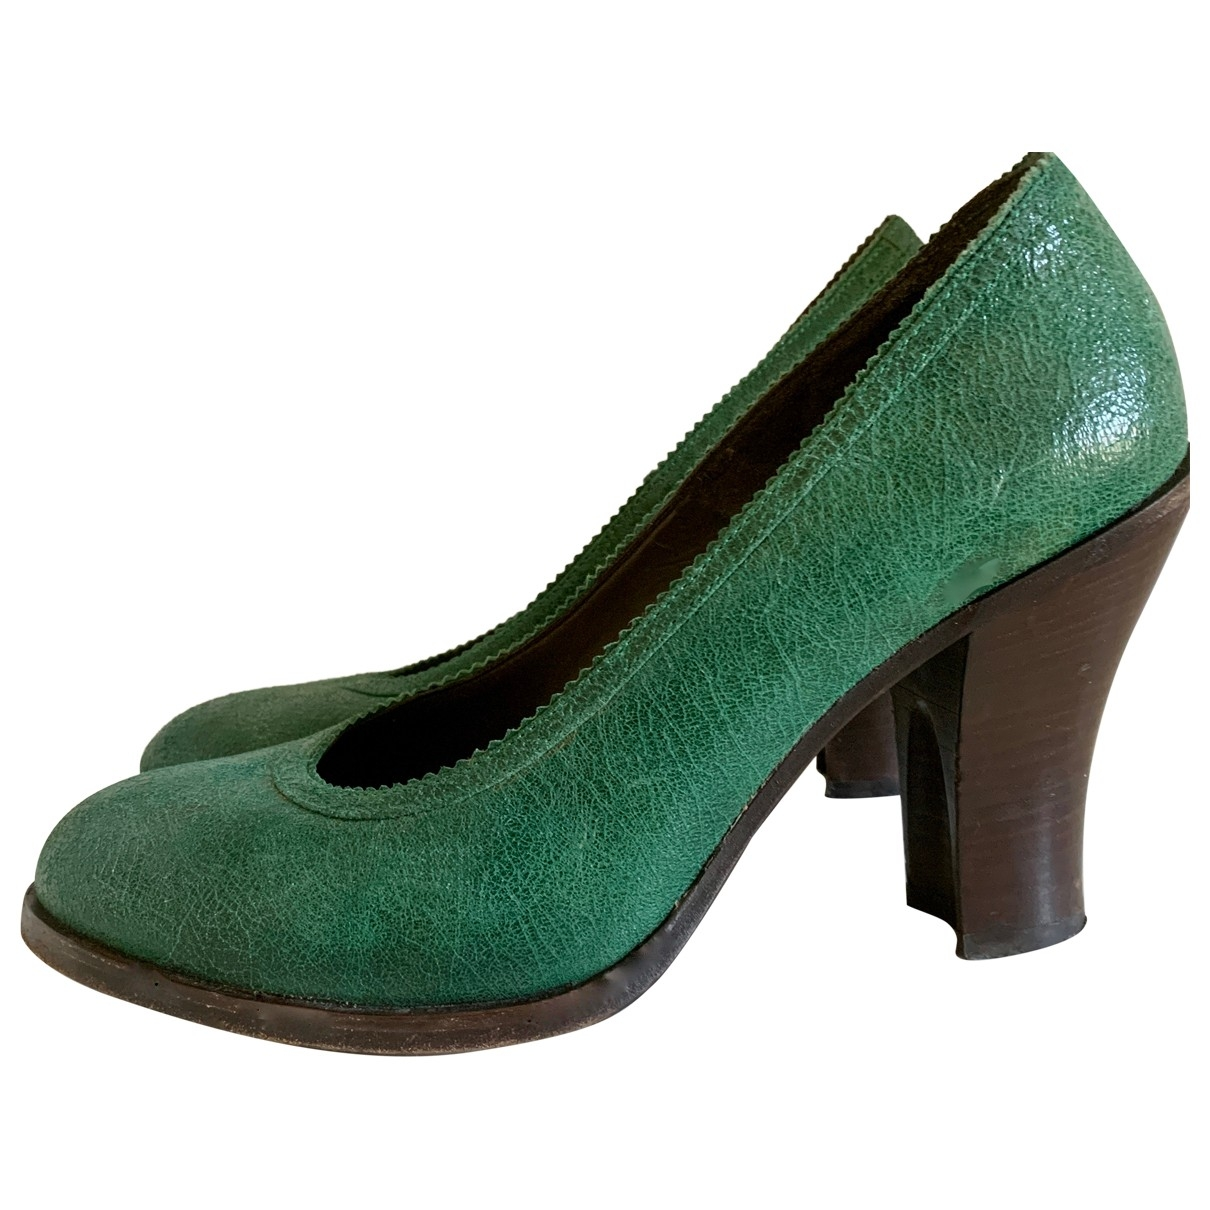 Dries Van Noten \N Pumps in  Gruen Leder